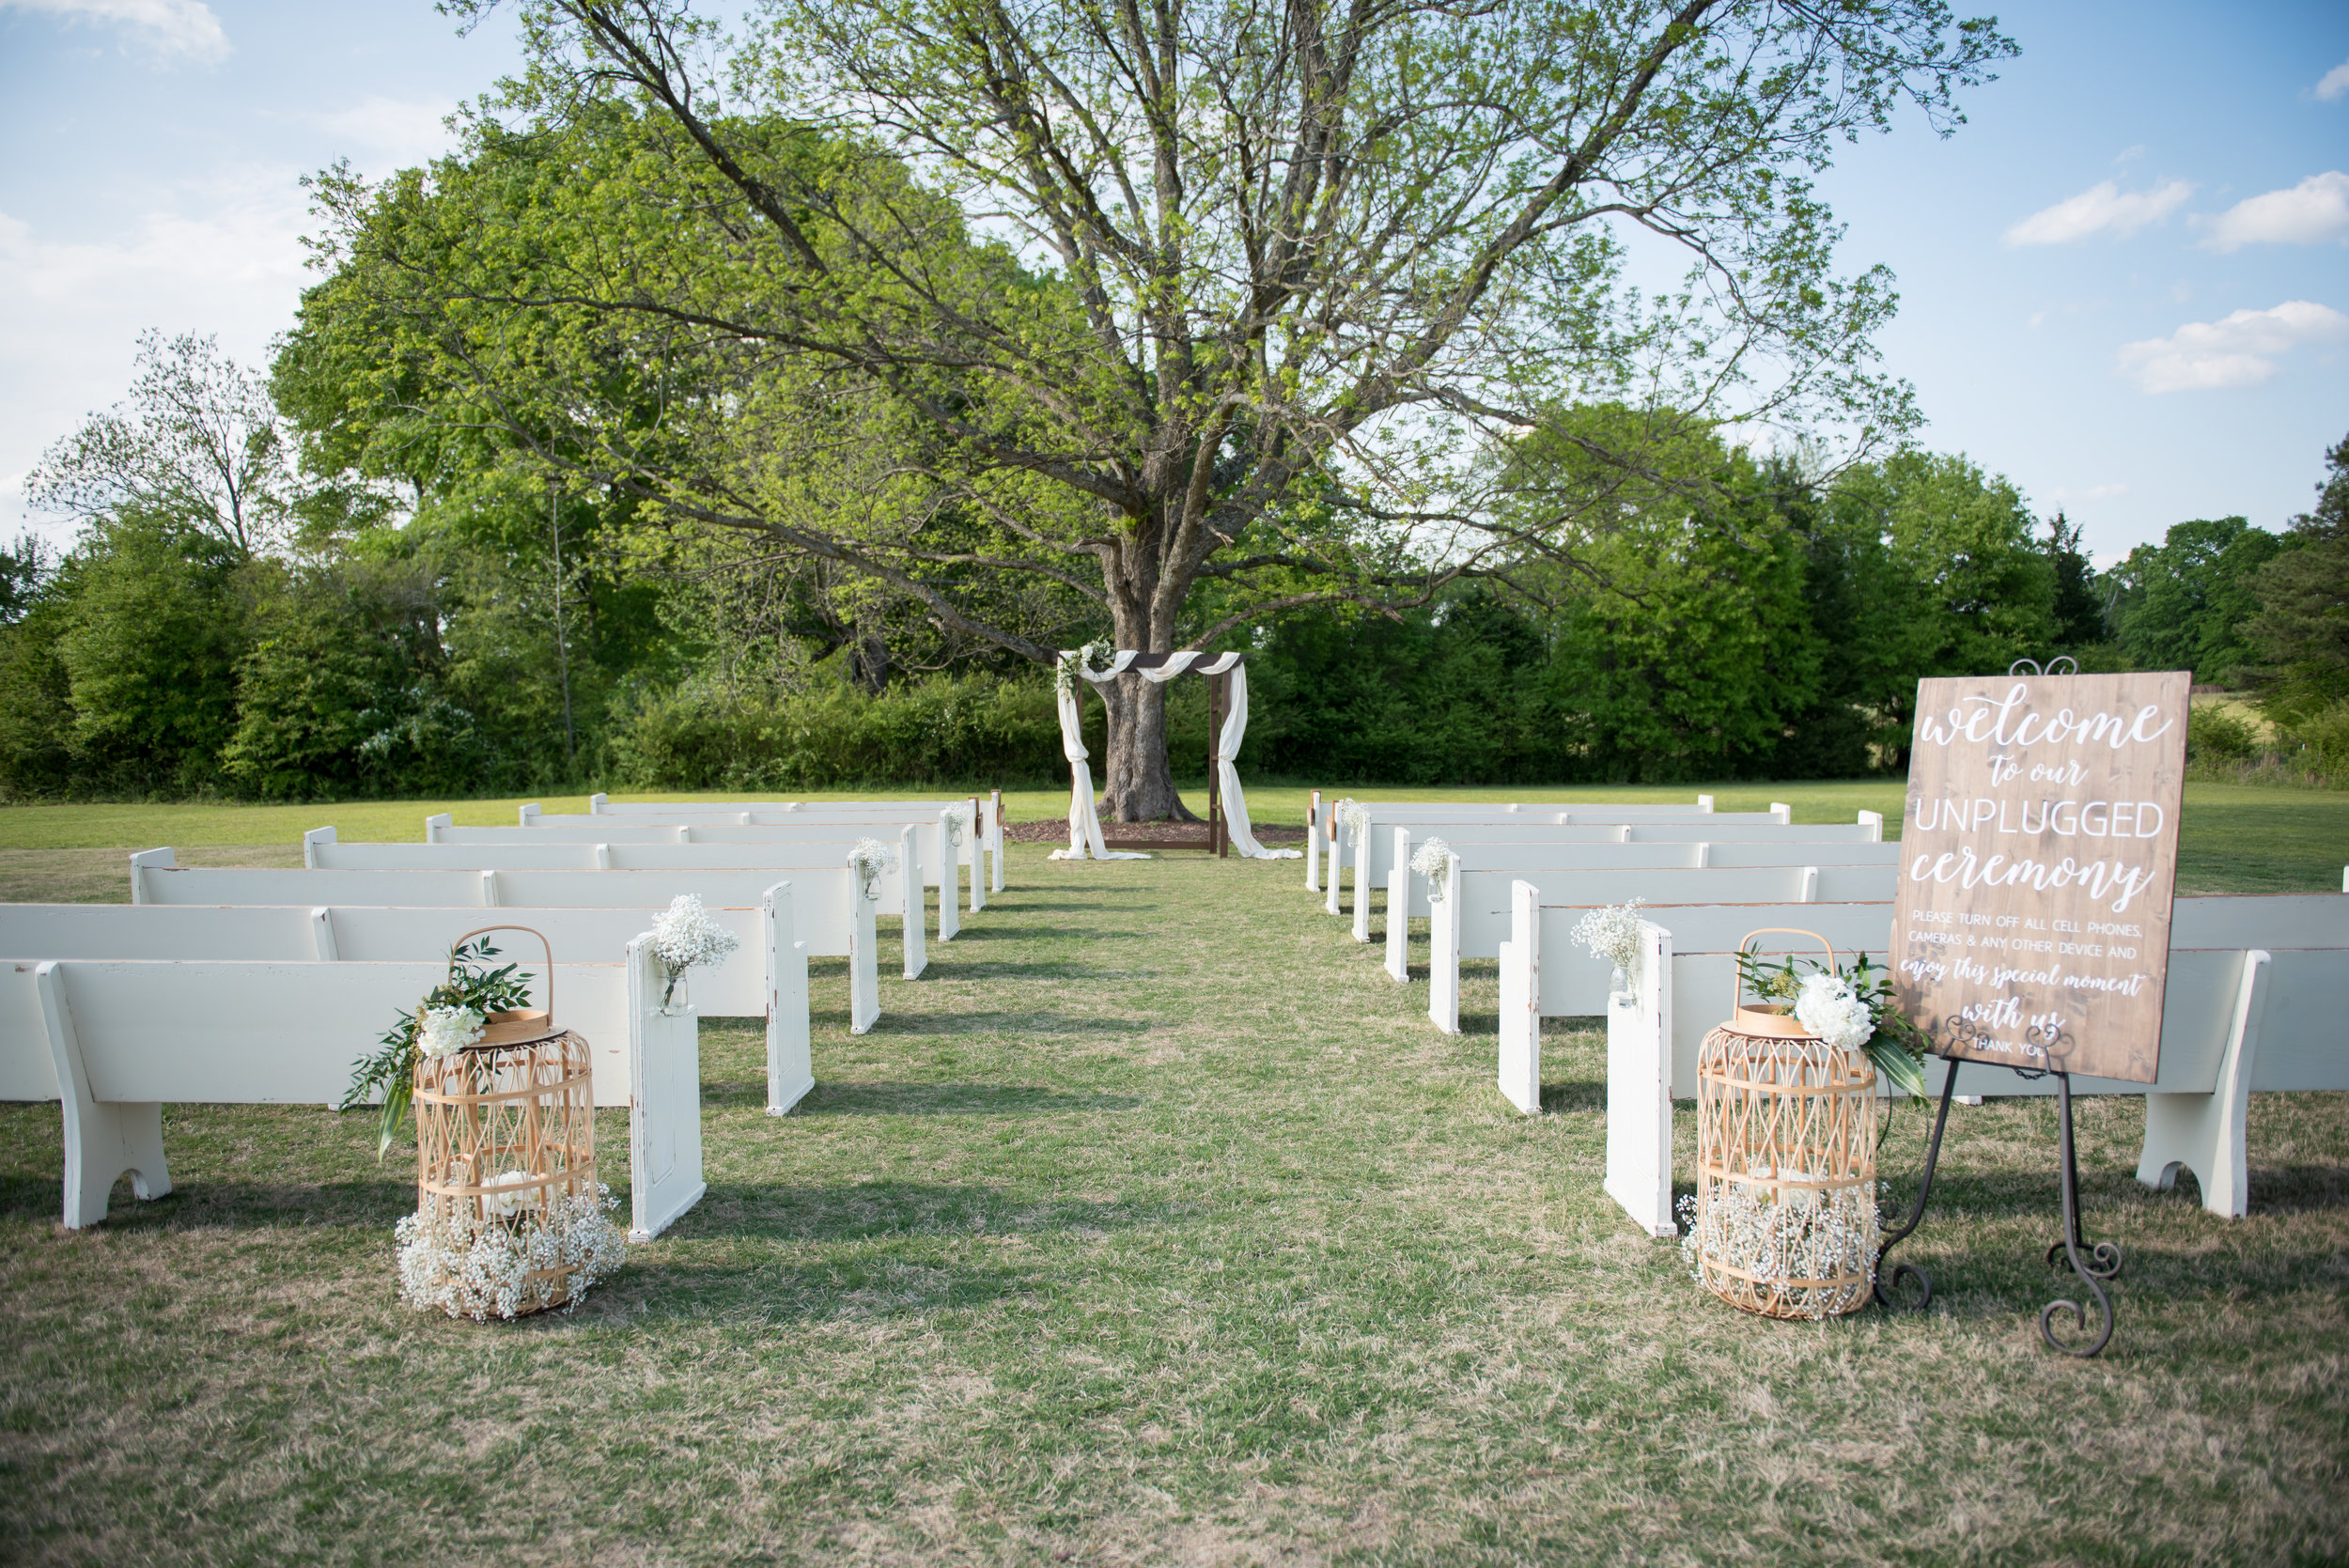 Wedding coordinators have to be sure the ceremony area is ready to go! PC: Brian Dean Photography